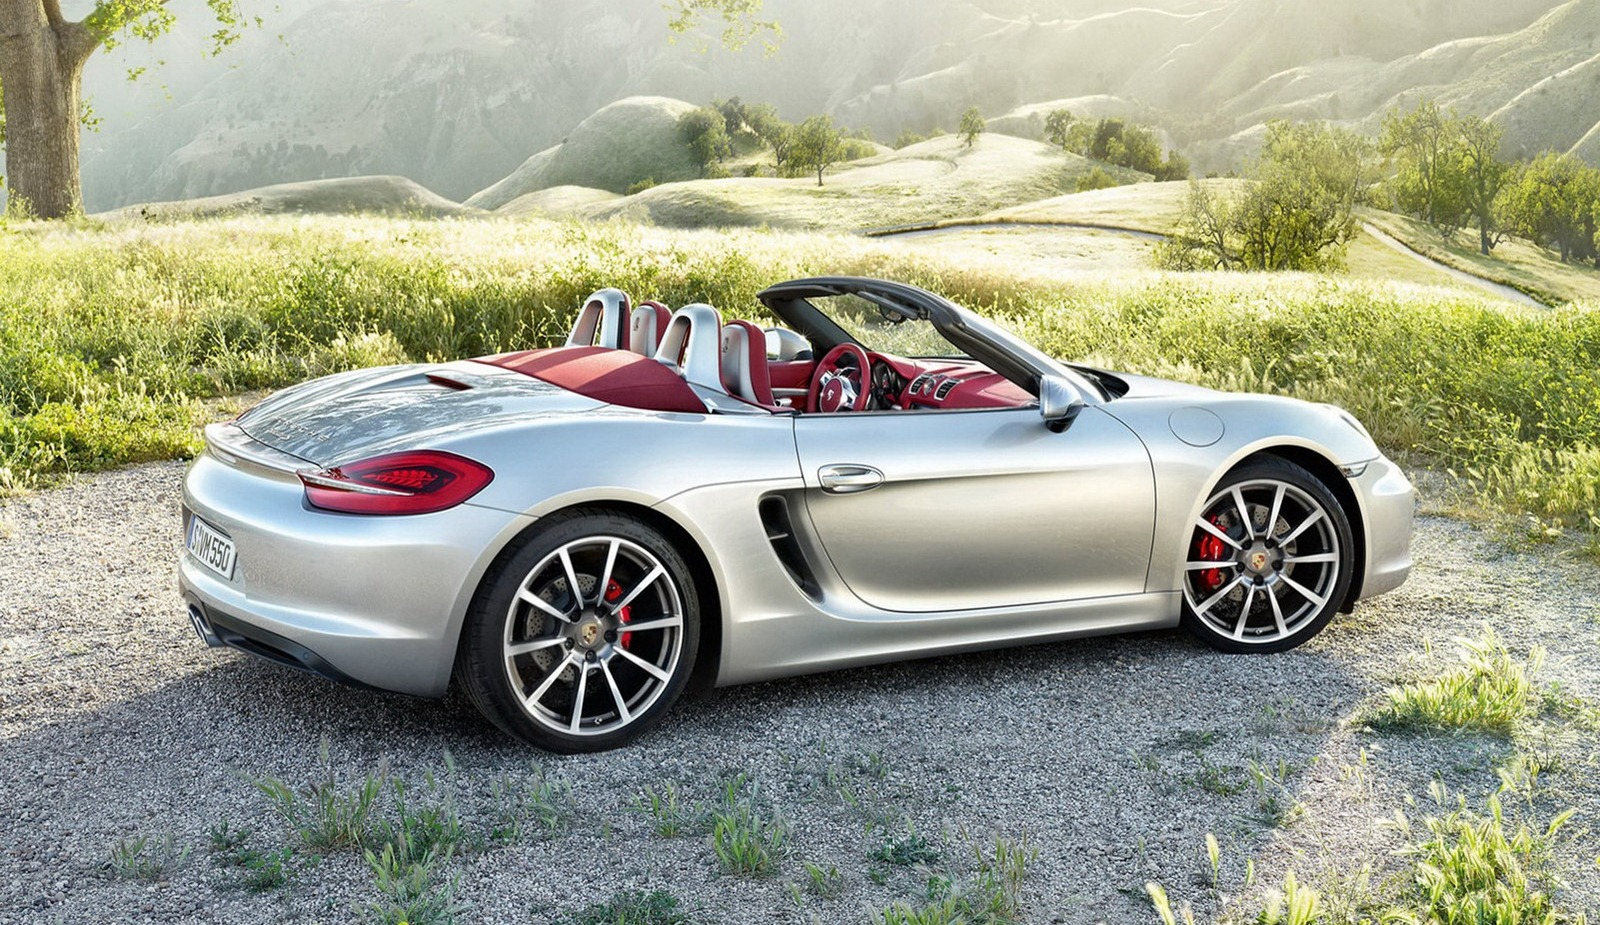 malaysia motoring news 2013 porsche boxster unveiled a stunner lighter and more economical. Black Bedroom Furniture Sets. Home Design Ideas